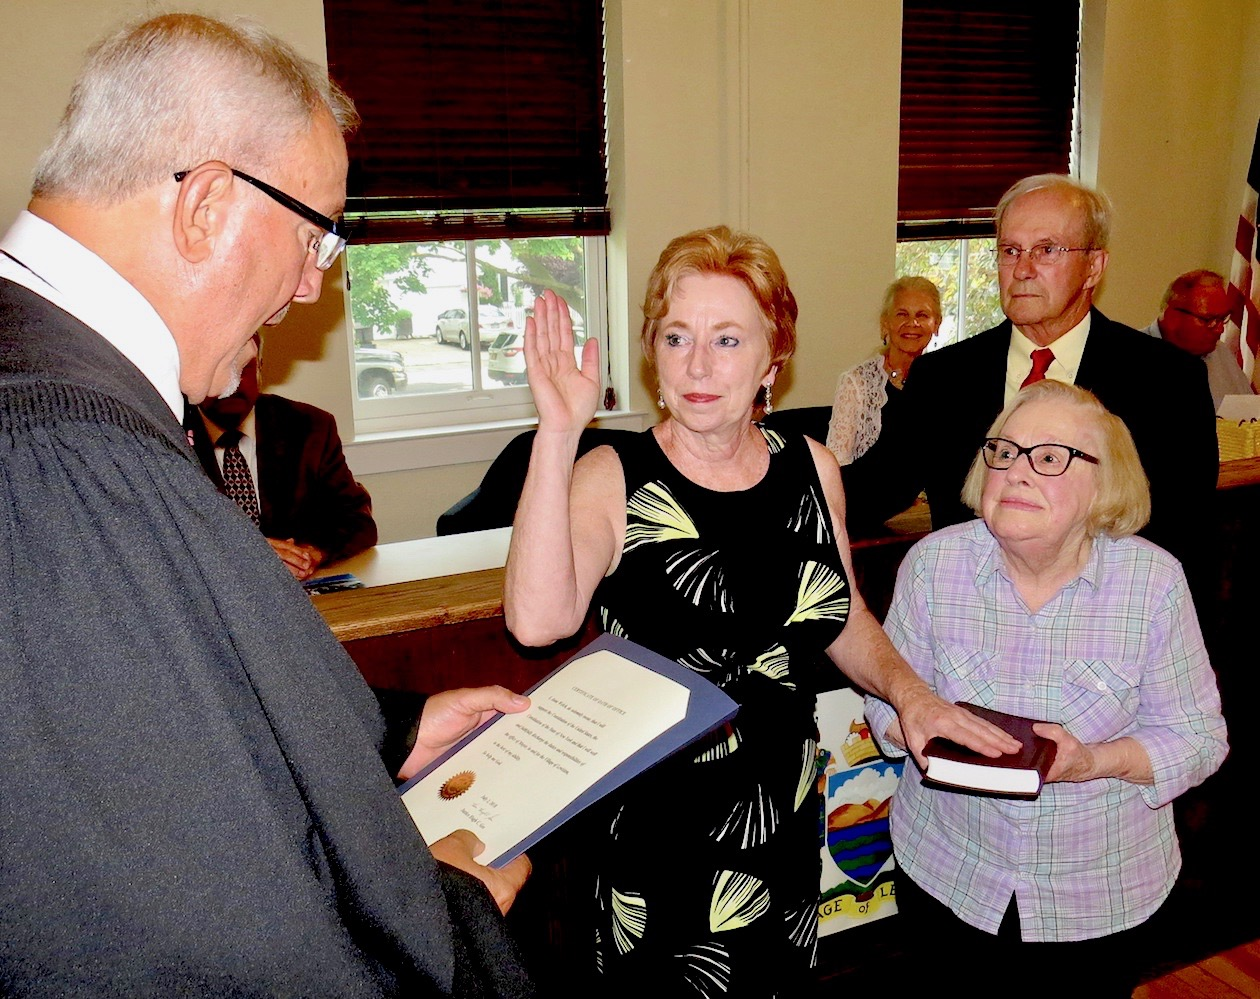 Mayor Anne Welch is sworn into office by the Hon. Hugh Gee. She is joined by former Mayor Marilyn Toohey (holding the Bible) and her husband, Bob.